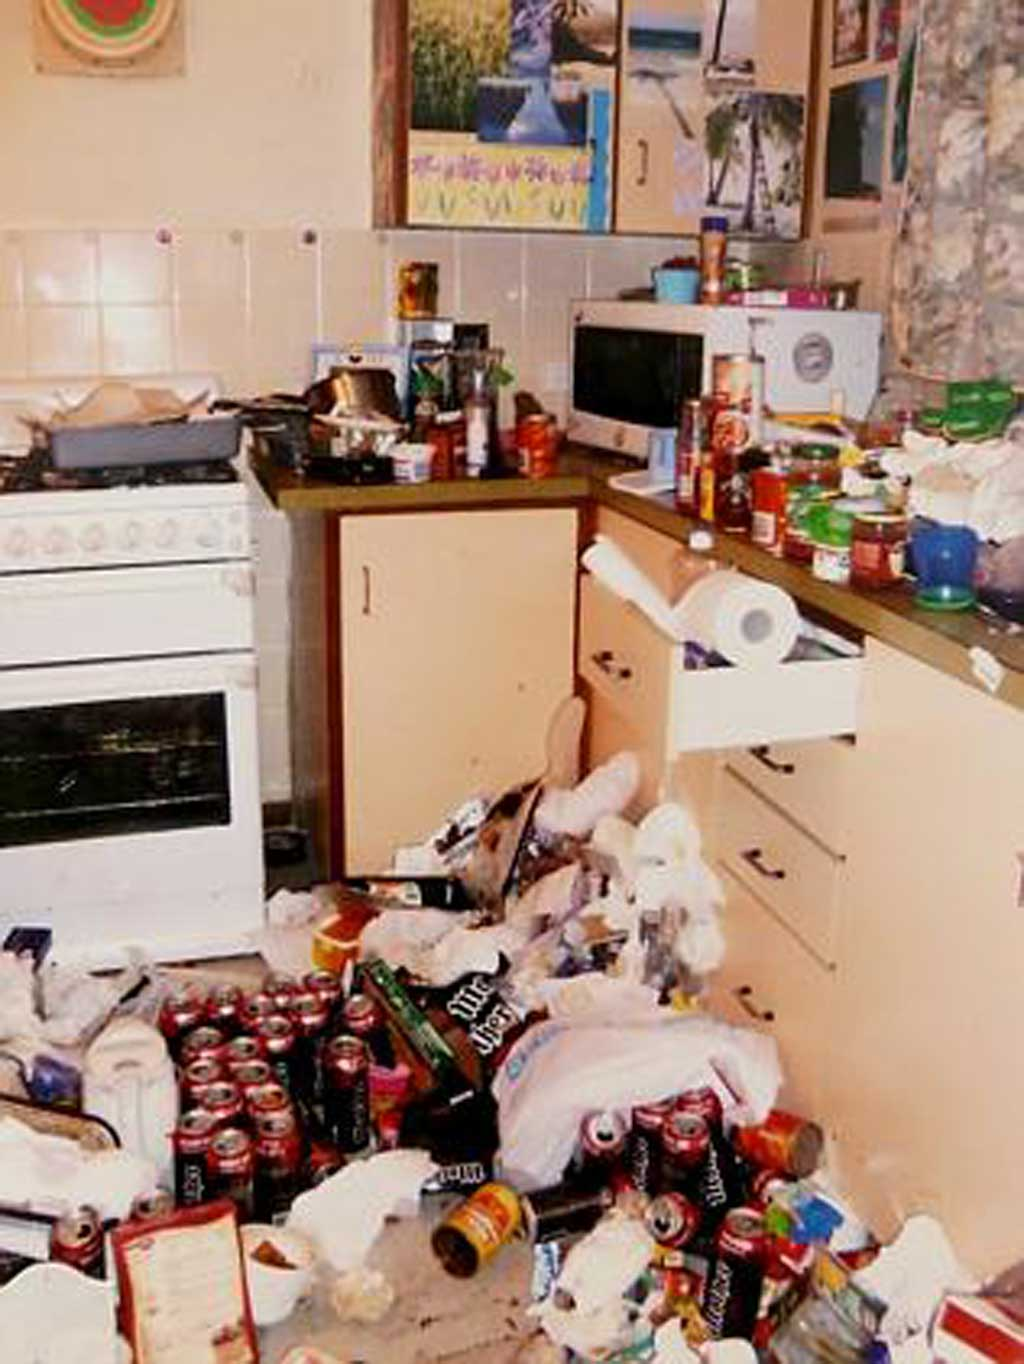 This photo shows the kitchen in the home, strewn with energy drinks. (Supplied)